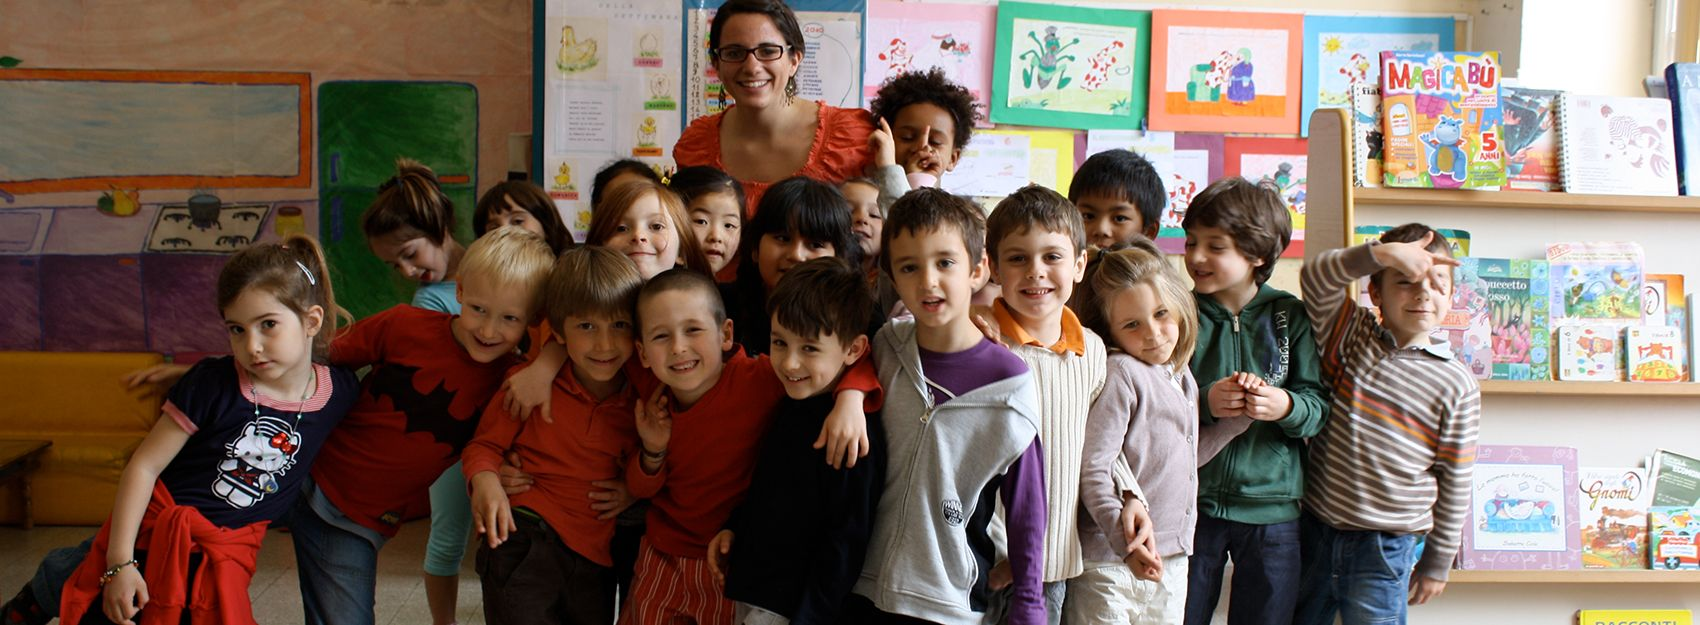 A Rome education student with her students